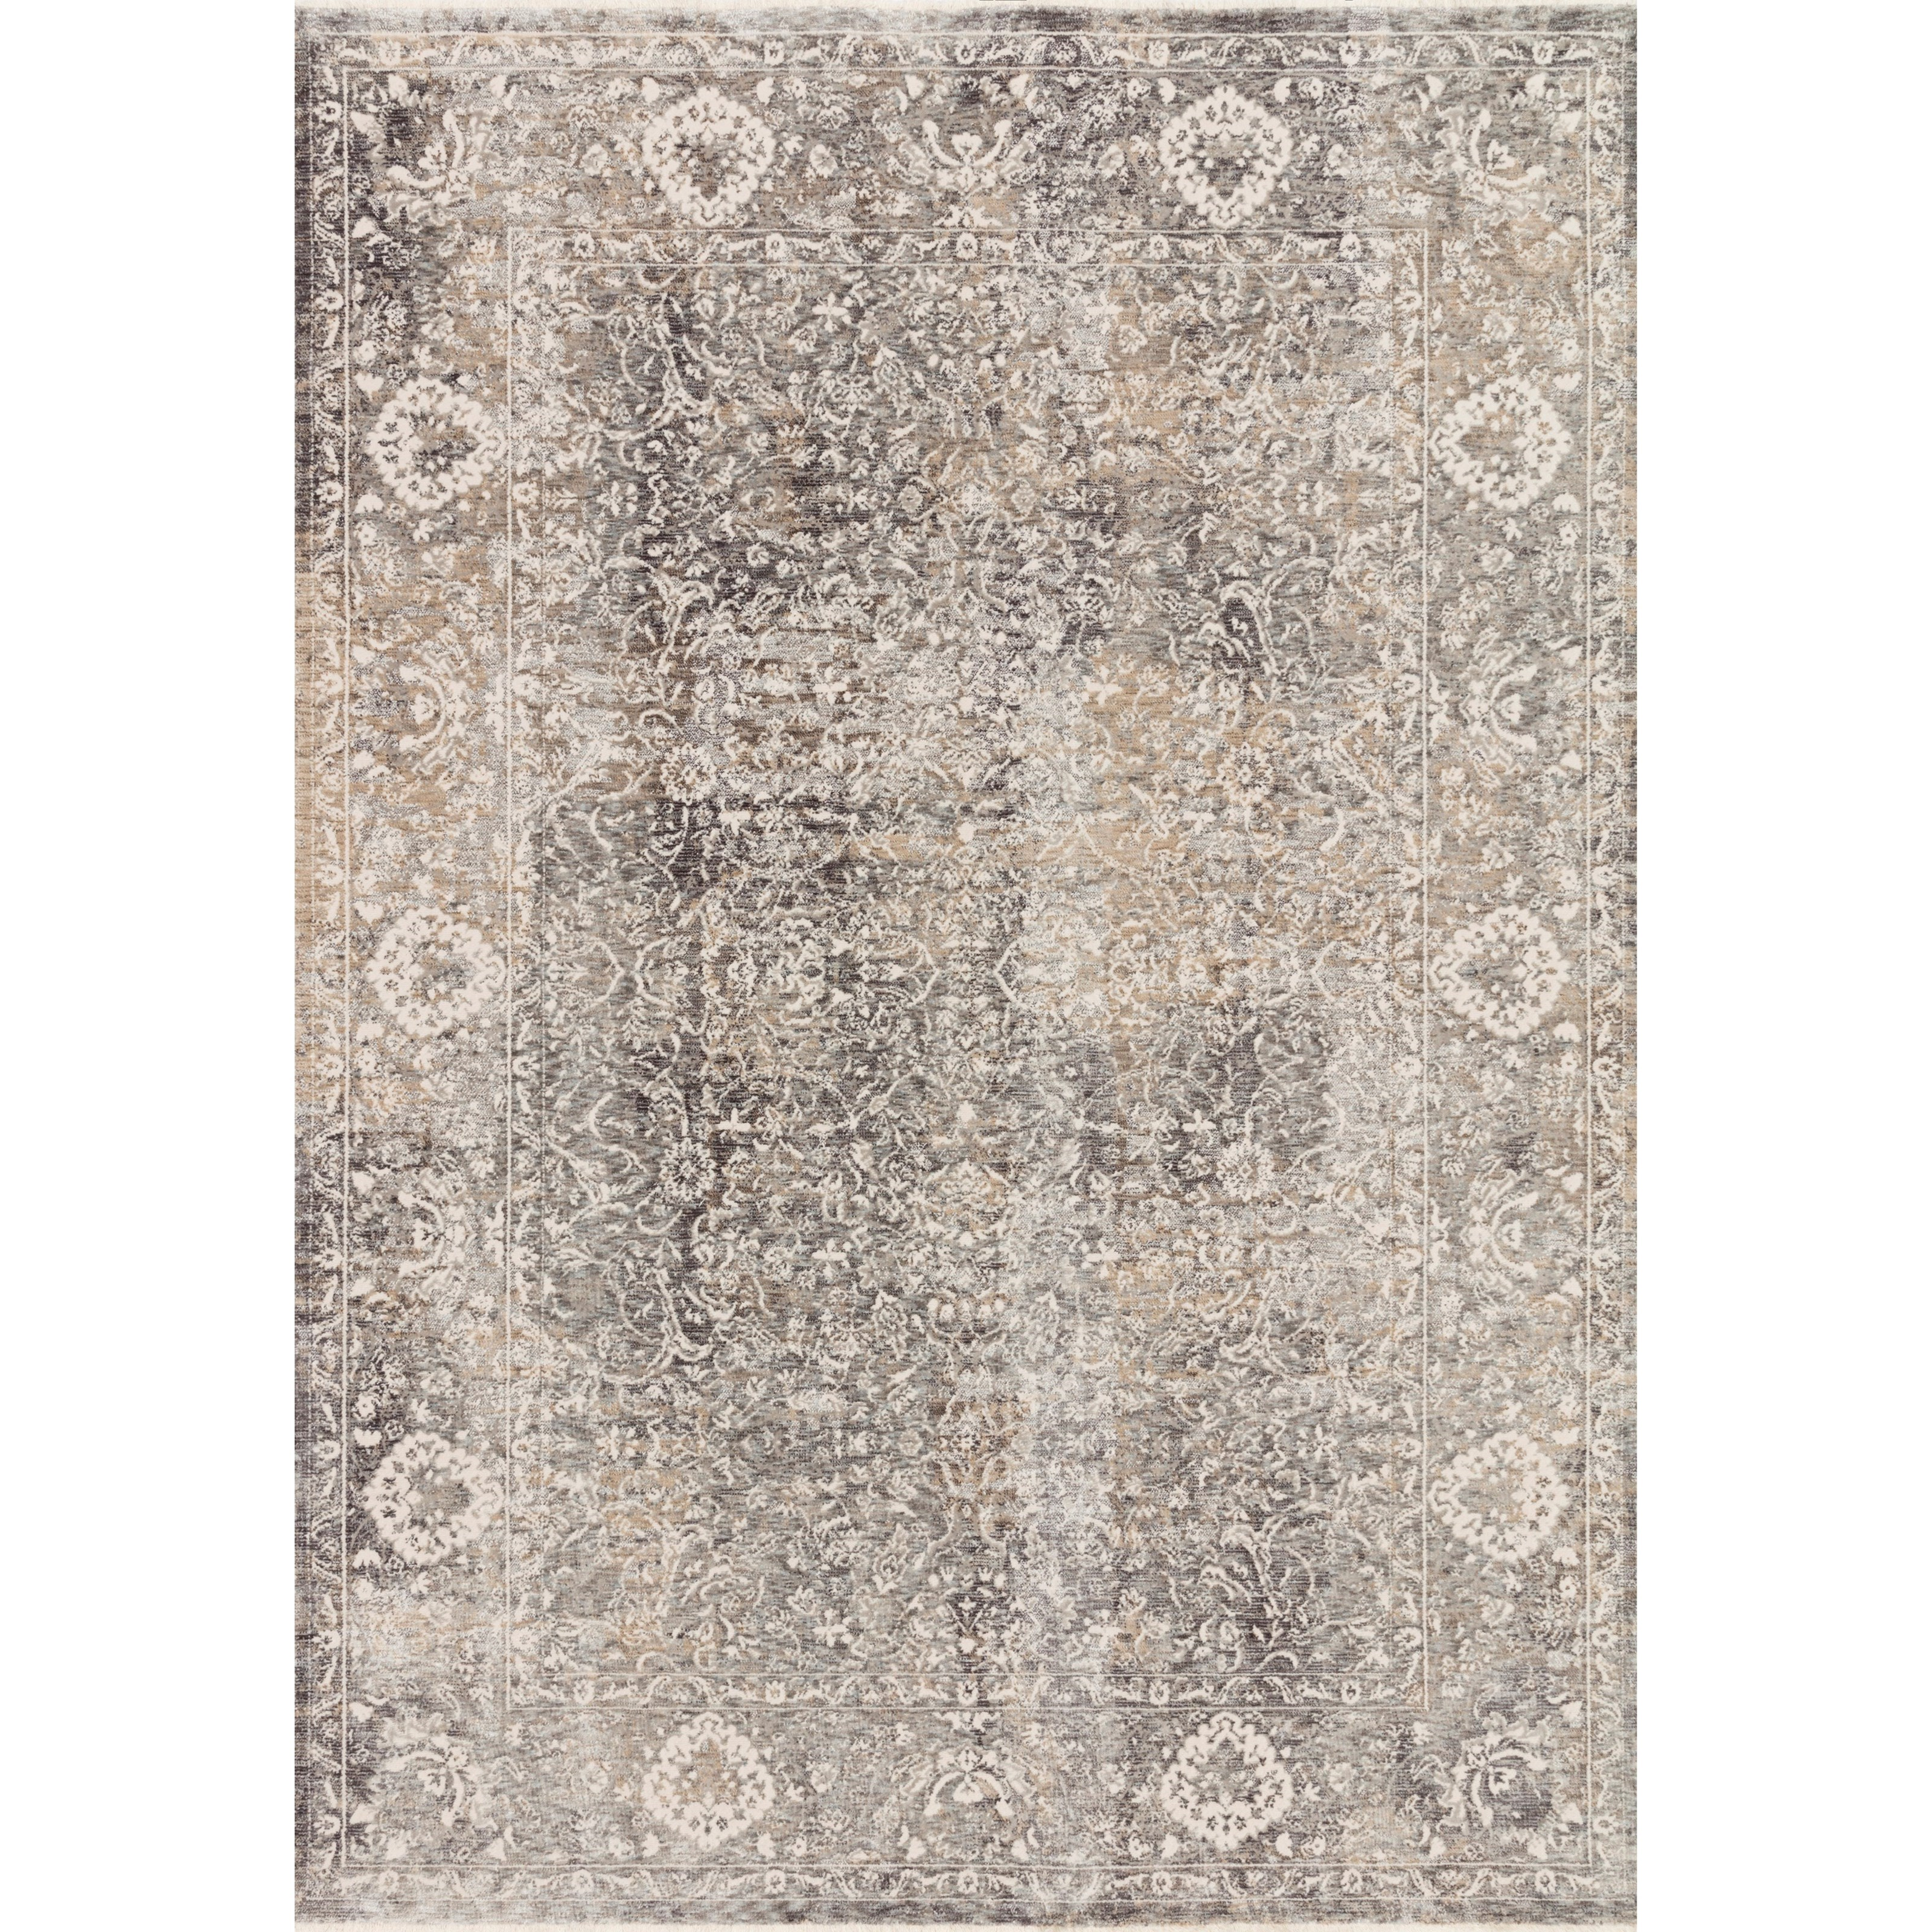 """Homage 2'6"""" x 8'0"""" Stone / Ivory Rug by Loloi Rugs at Virginia Furniture Market"""